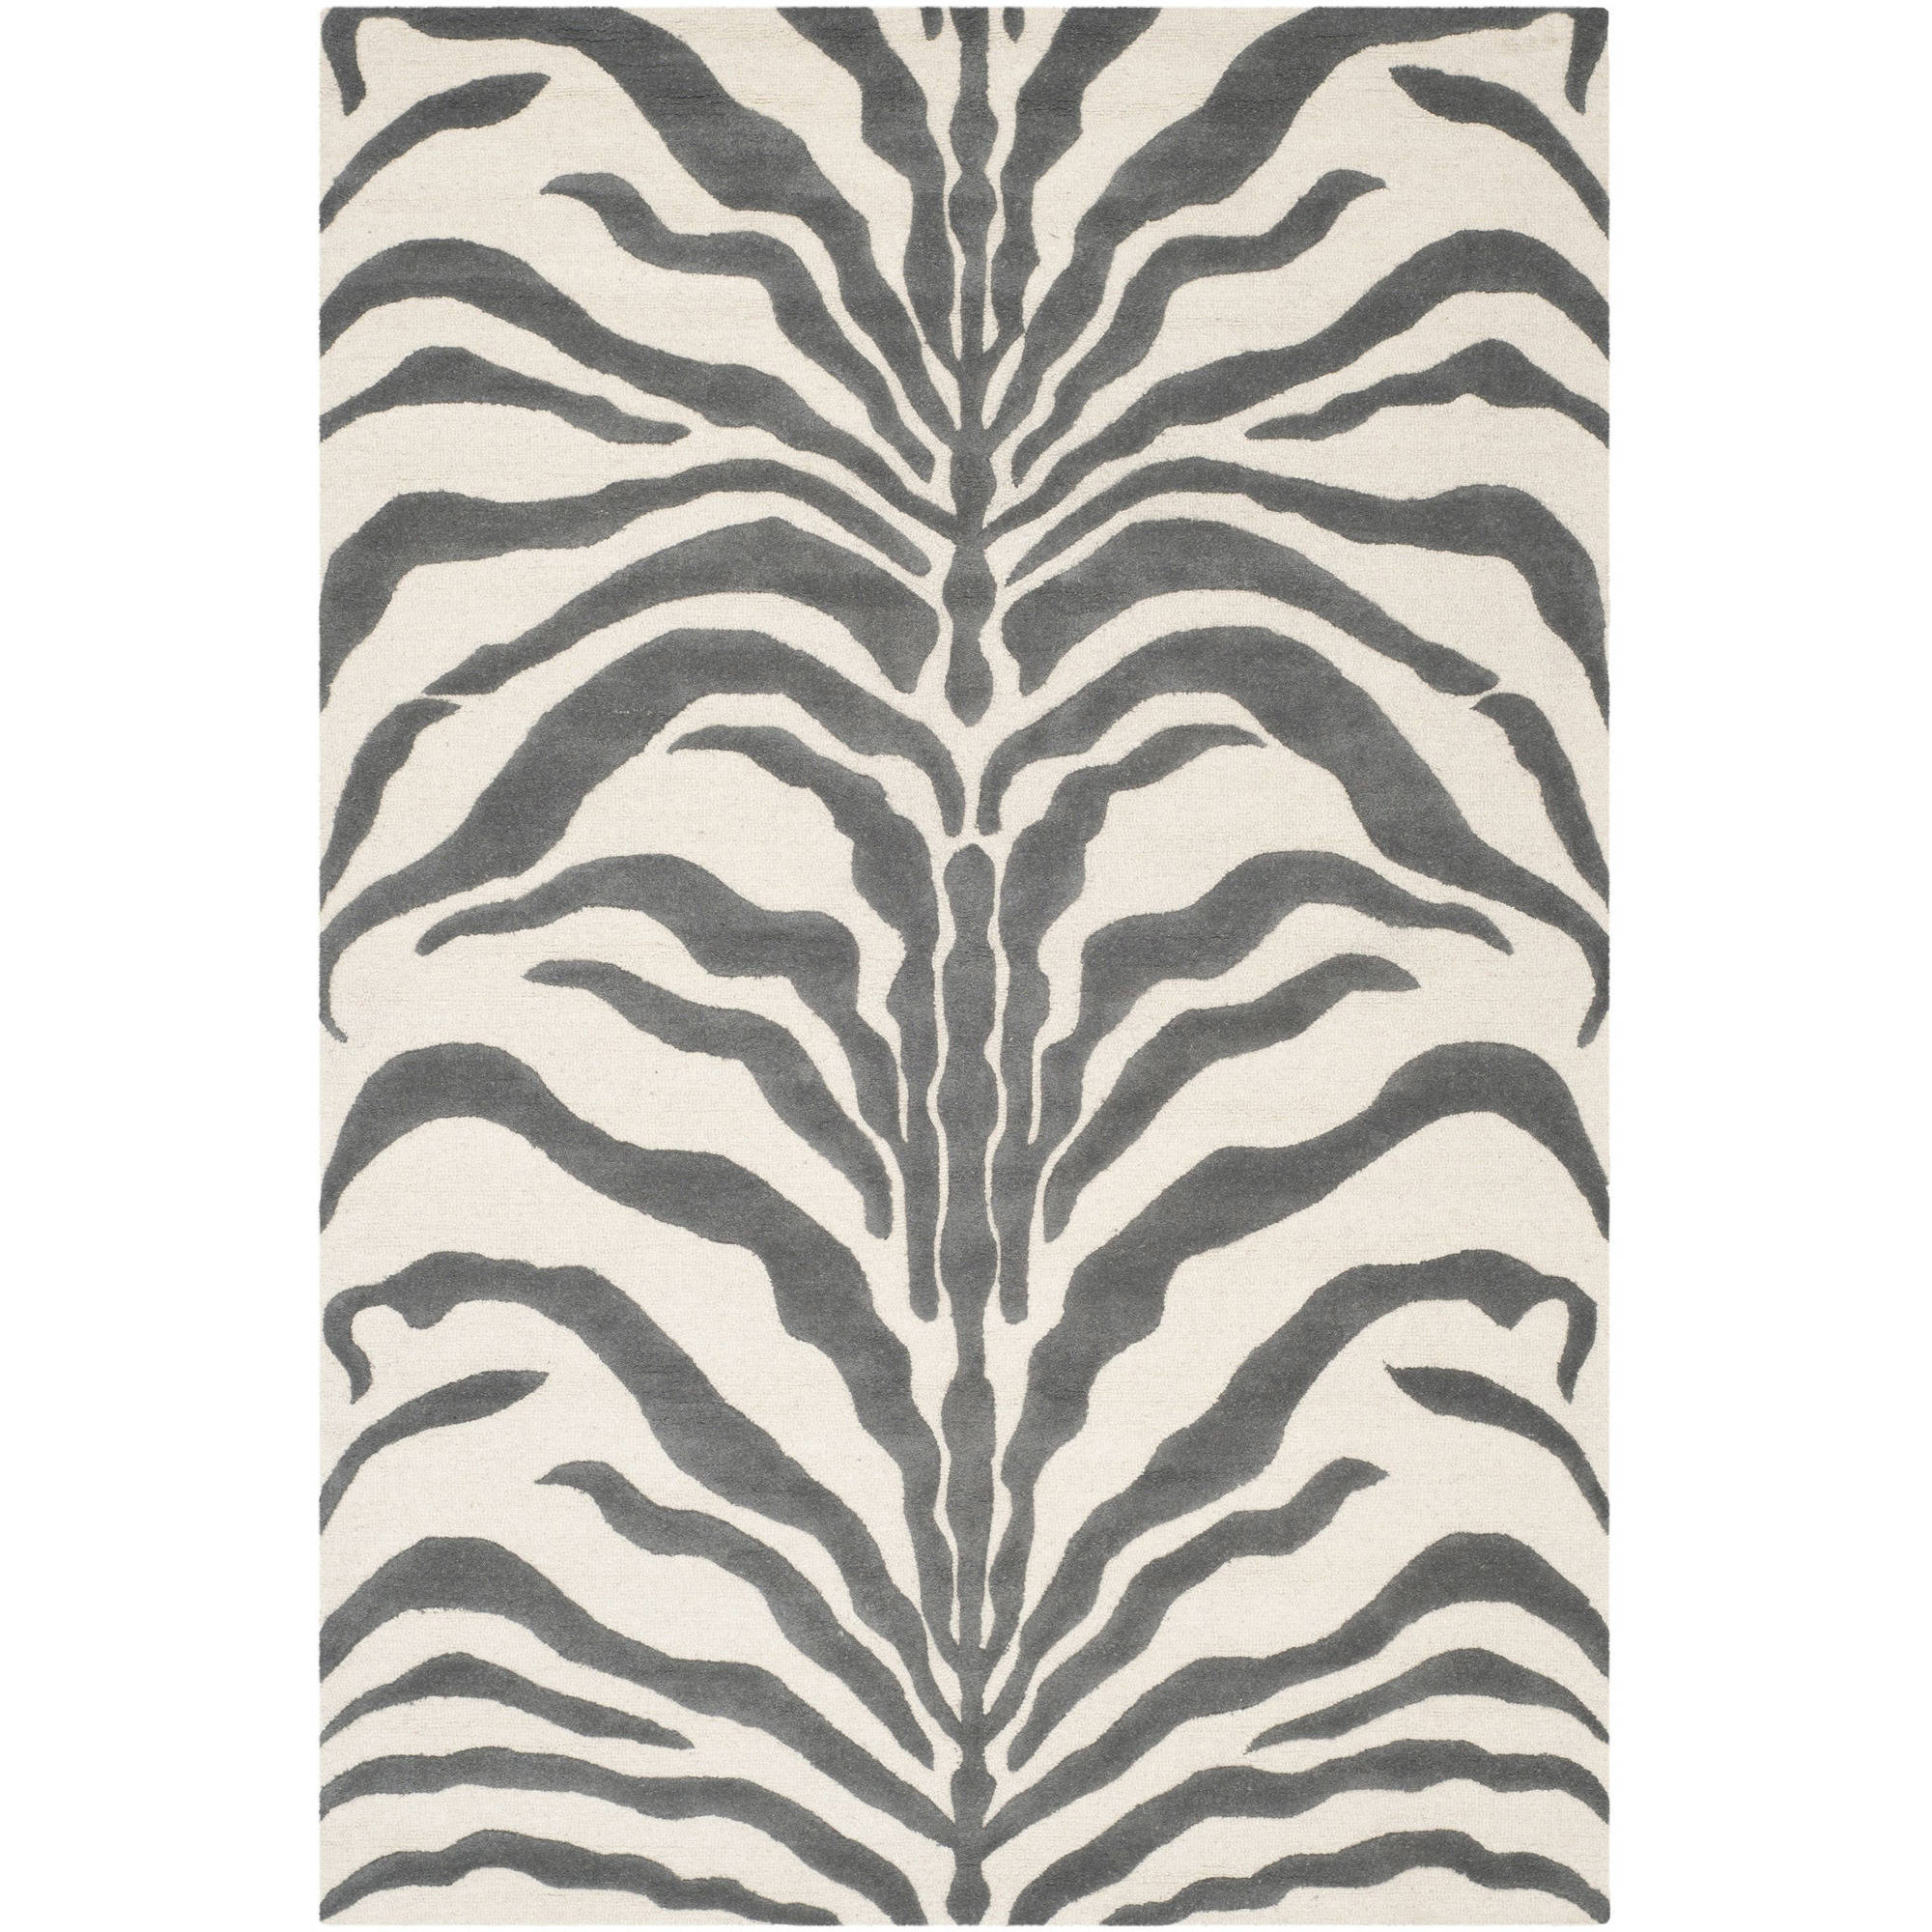 Safavieh Cambridge Leah Hand-Tufted Wool Area Rug